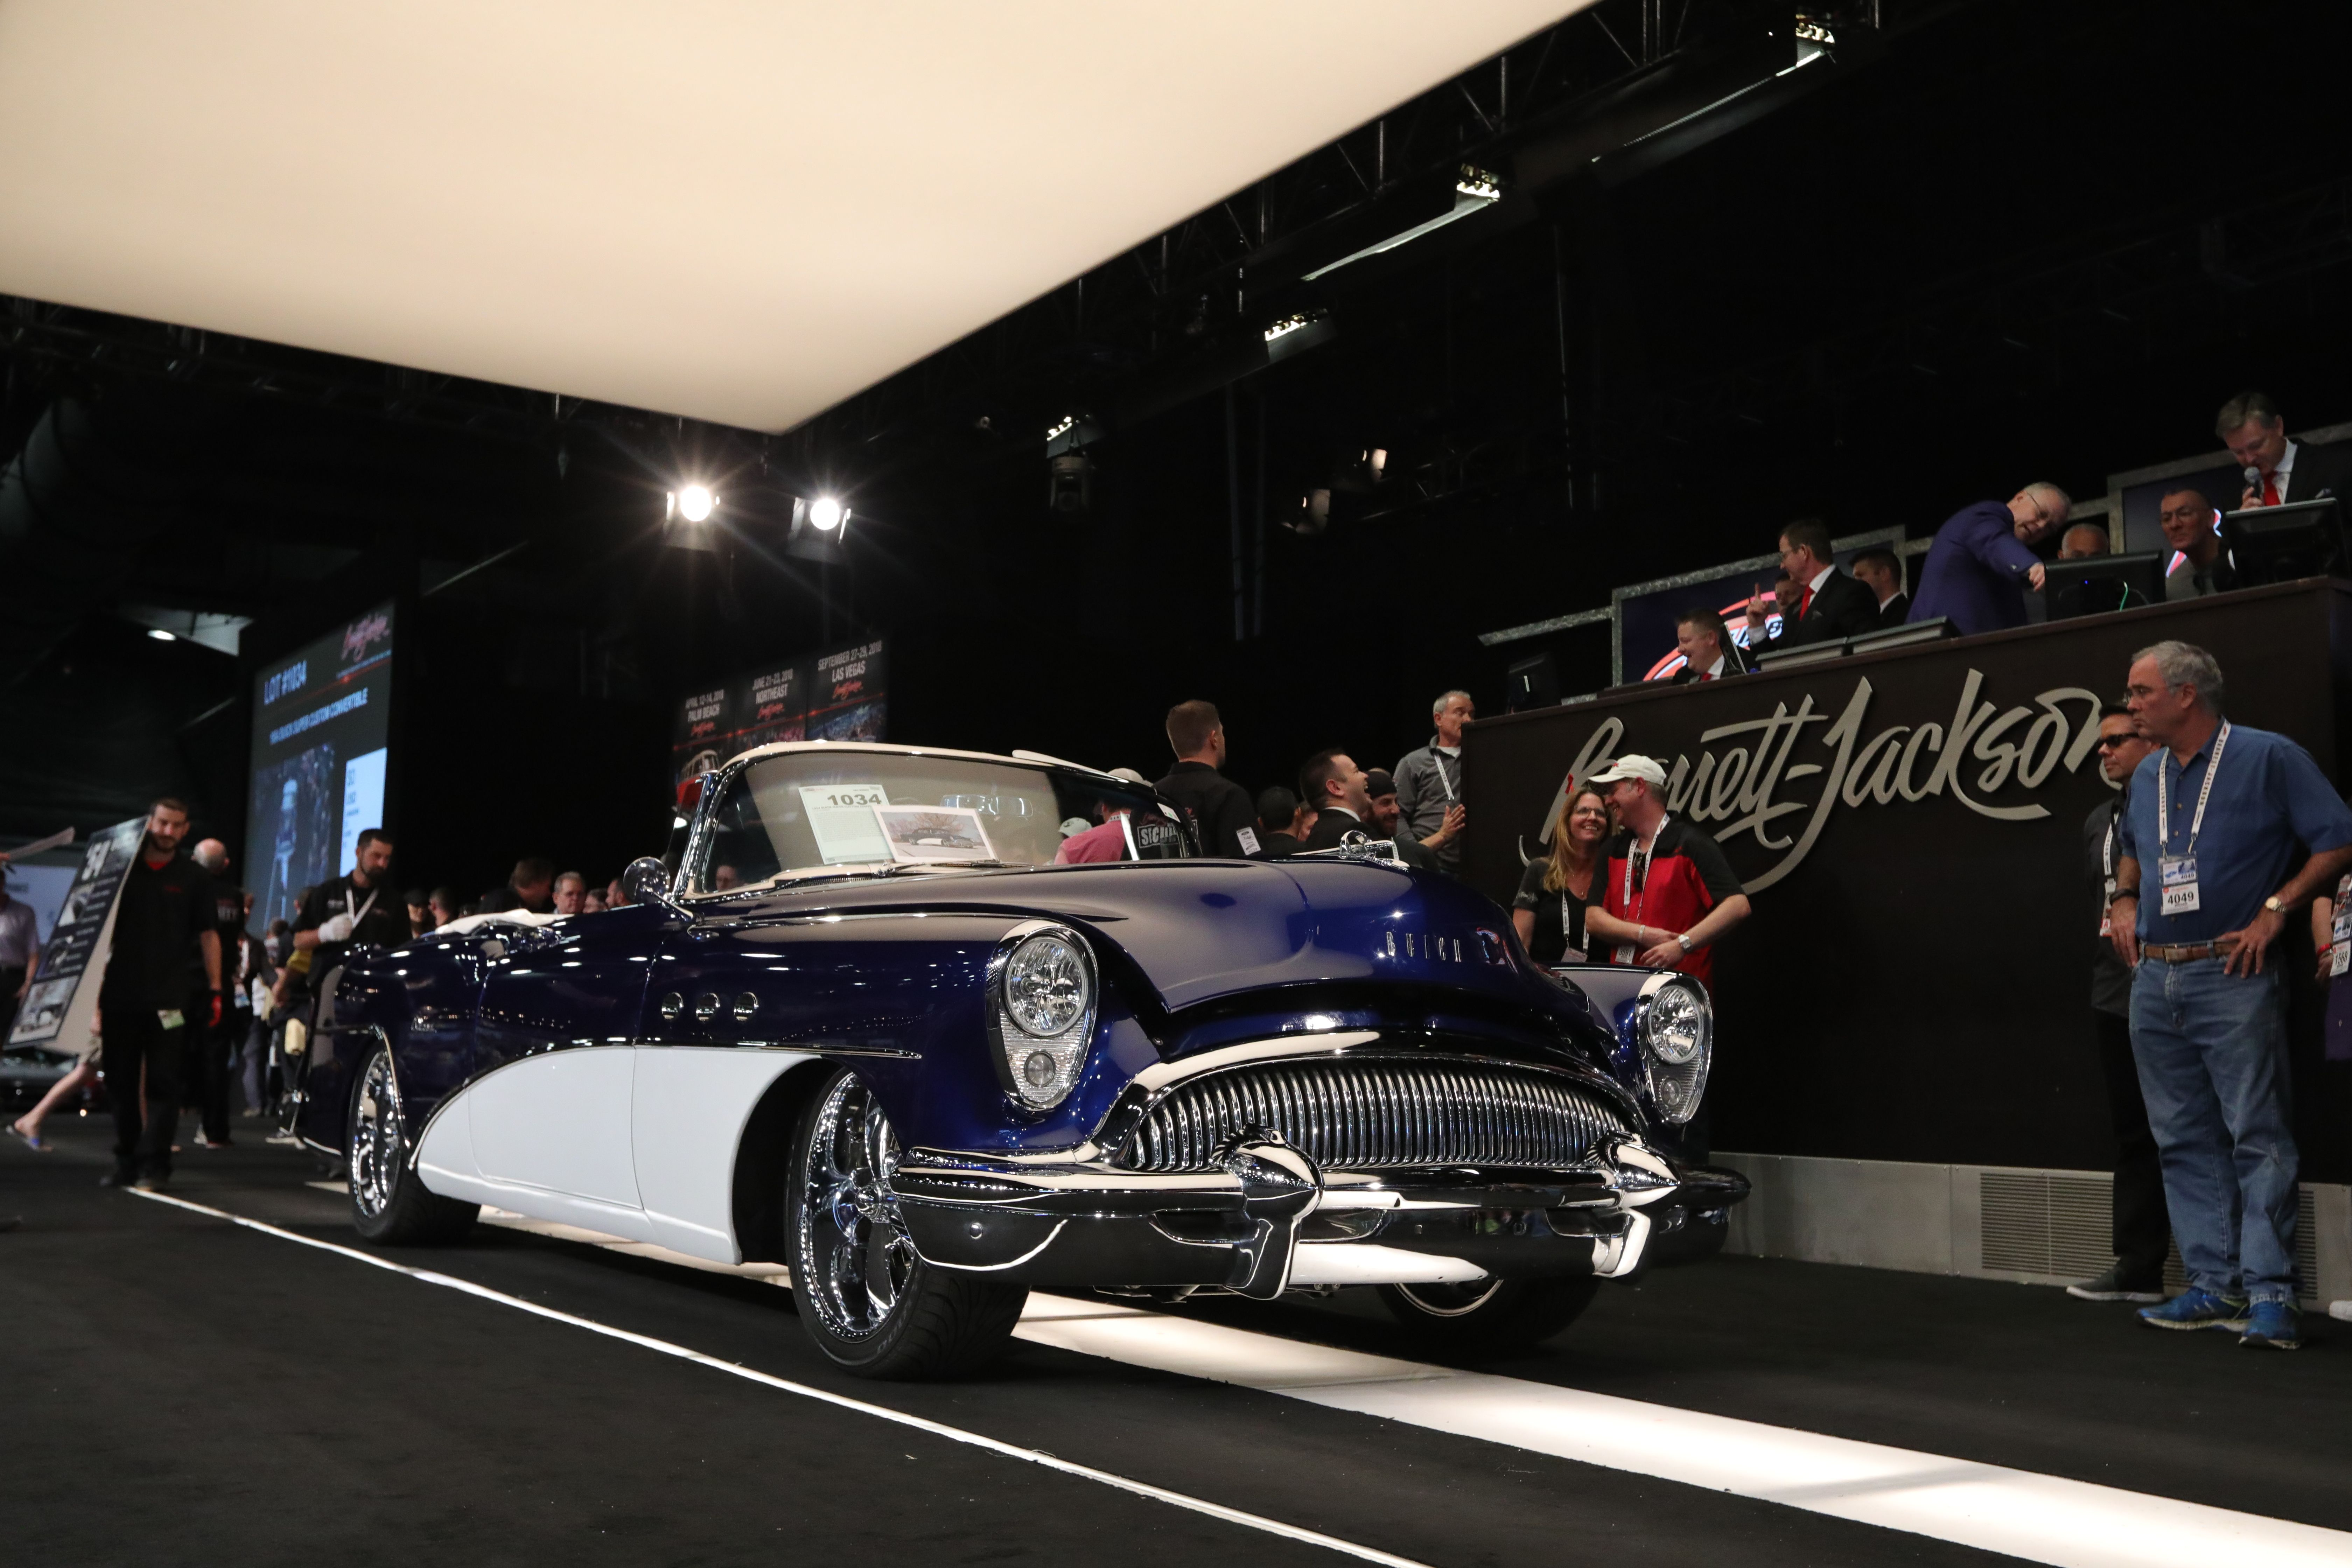 1954 Buick Super Custom Convertible This 1954 Buick Super Custom Convertible Has Been Updated With A Brand New 6 0 Liter Ls2 Engin Buick Cars Usa Convertible